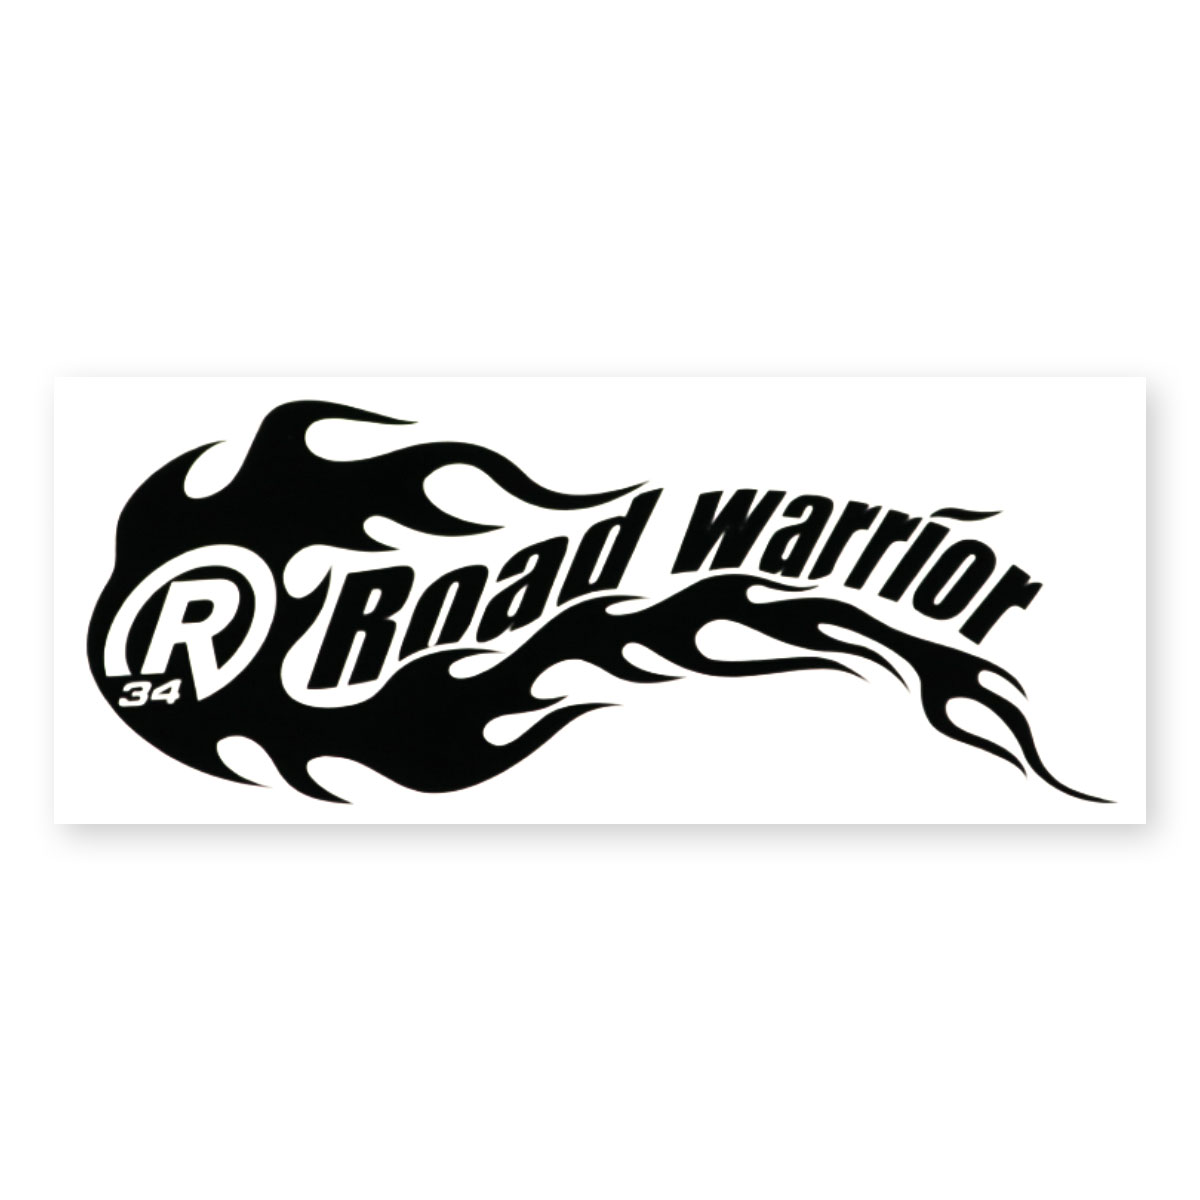 MC ROAD WARRIOR STICKER